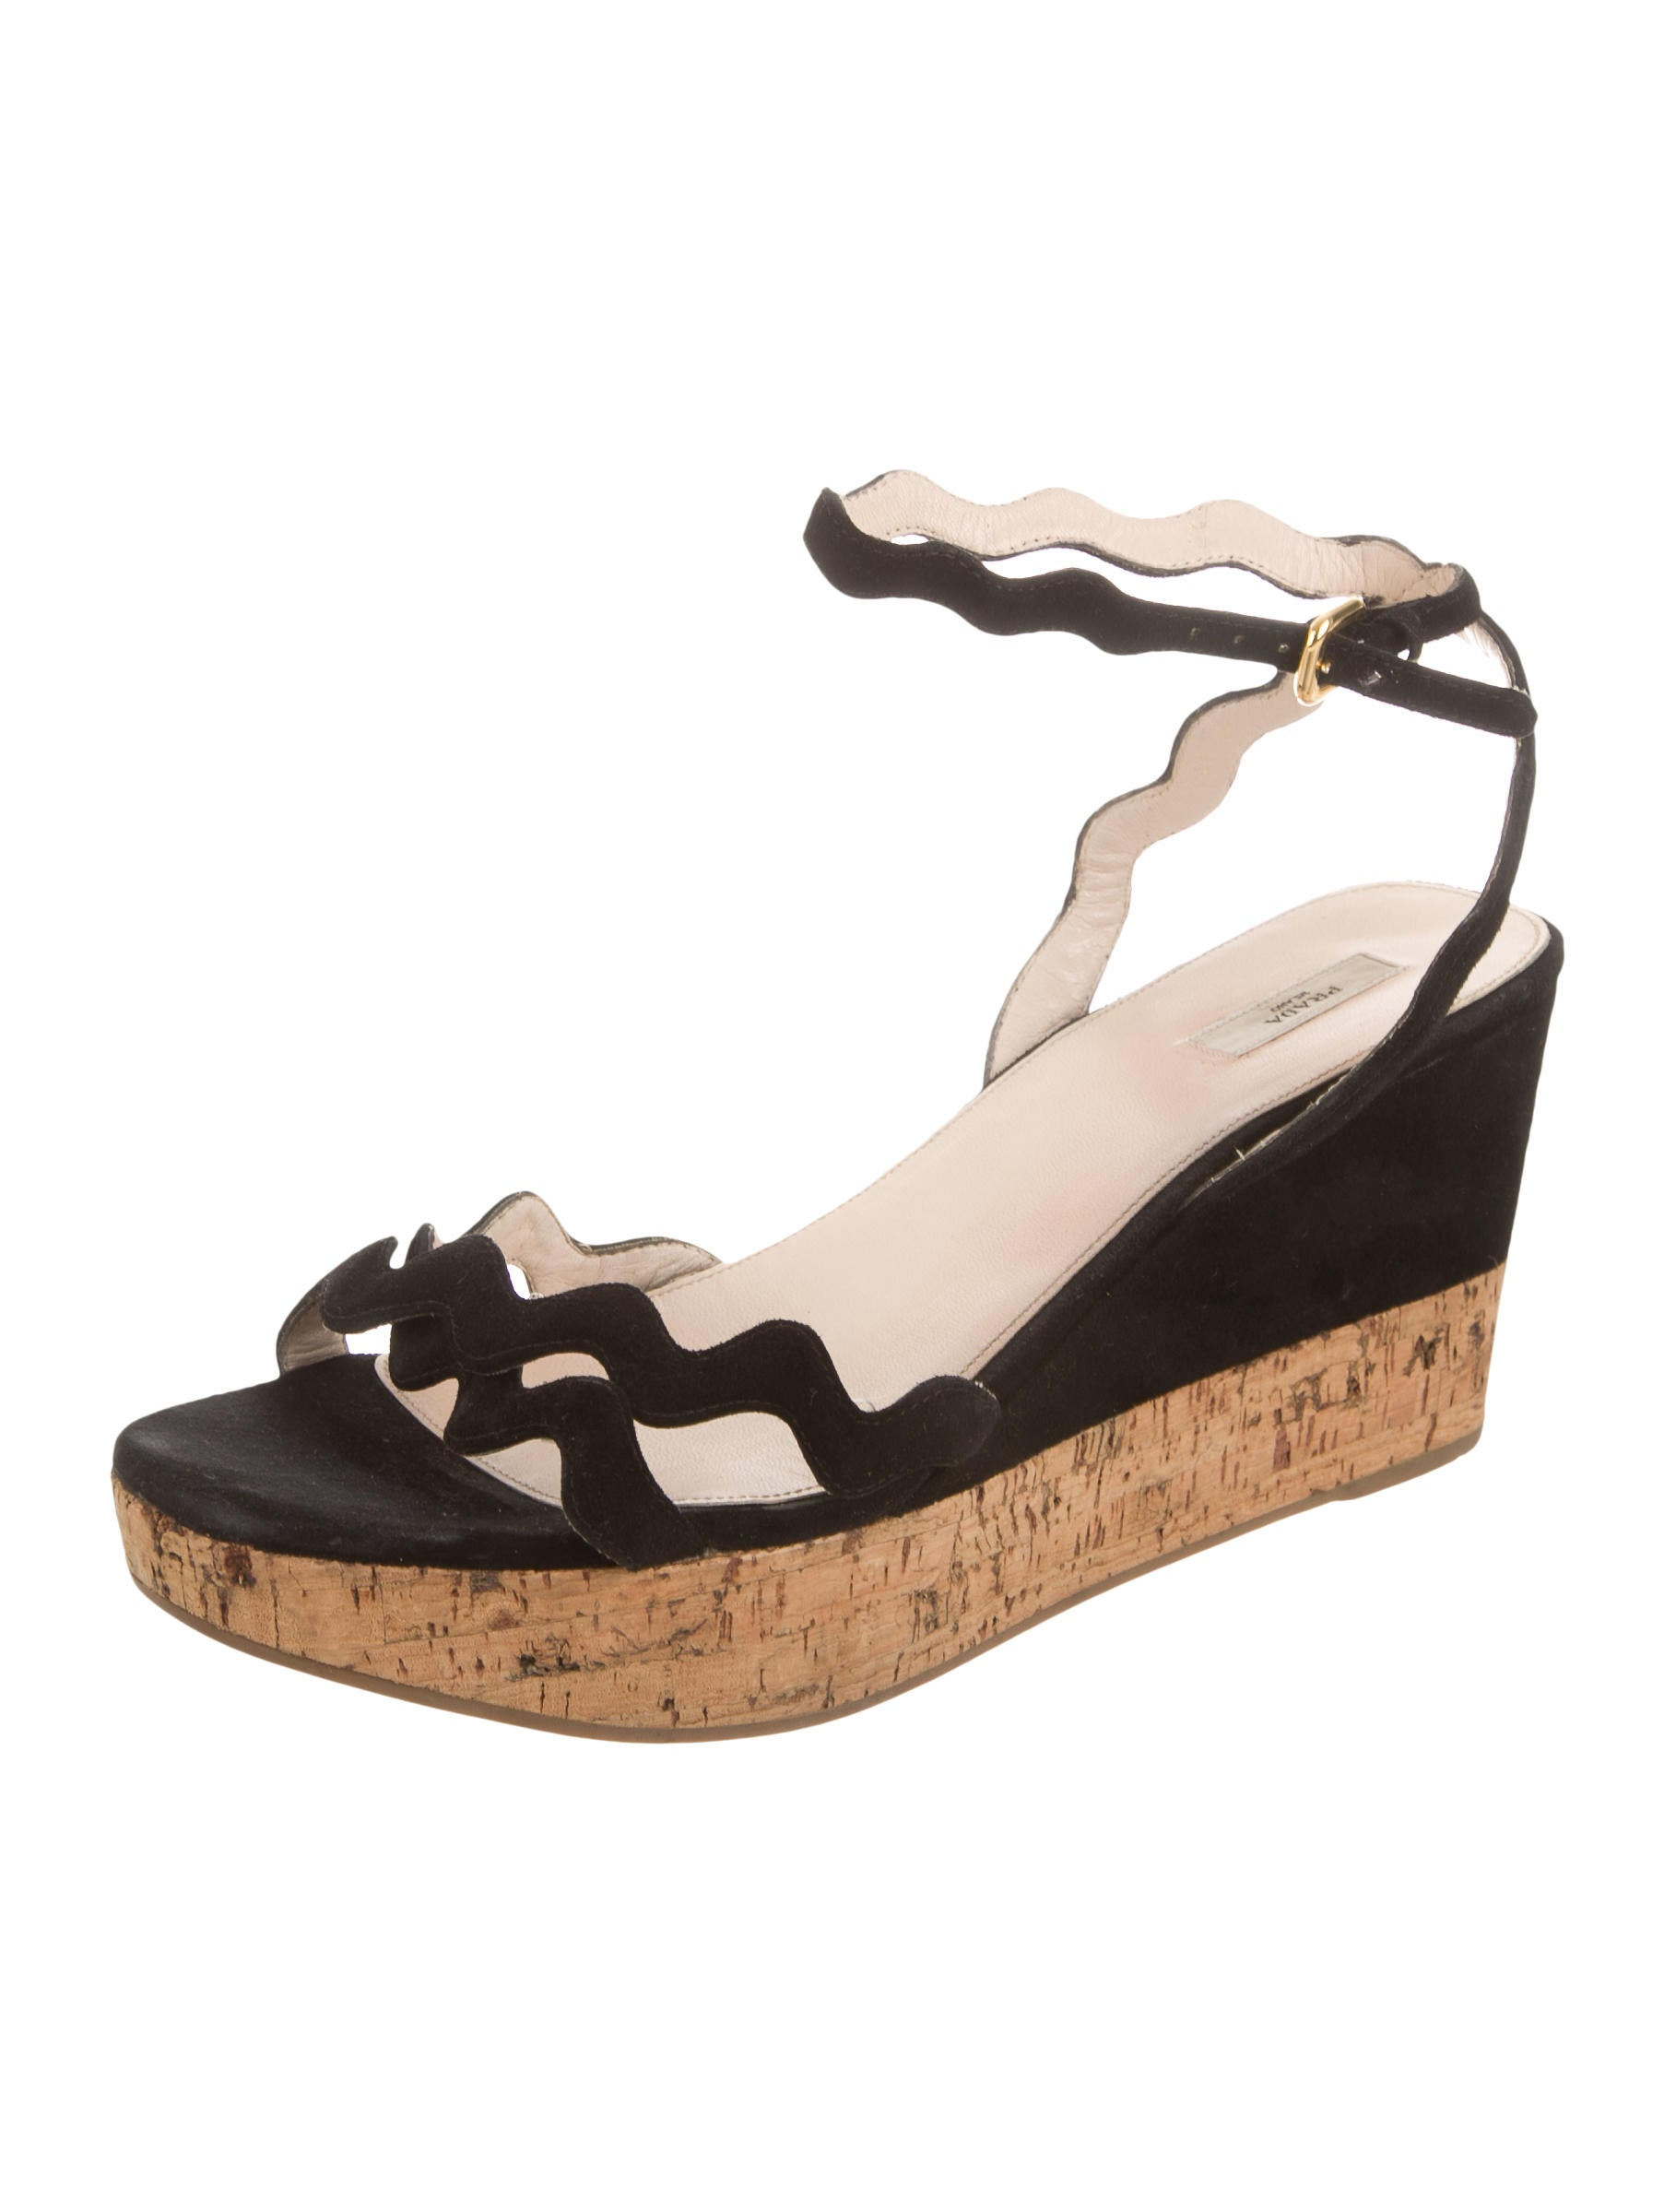 prada suede wedge sandals shoes pra114656 the realreal